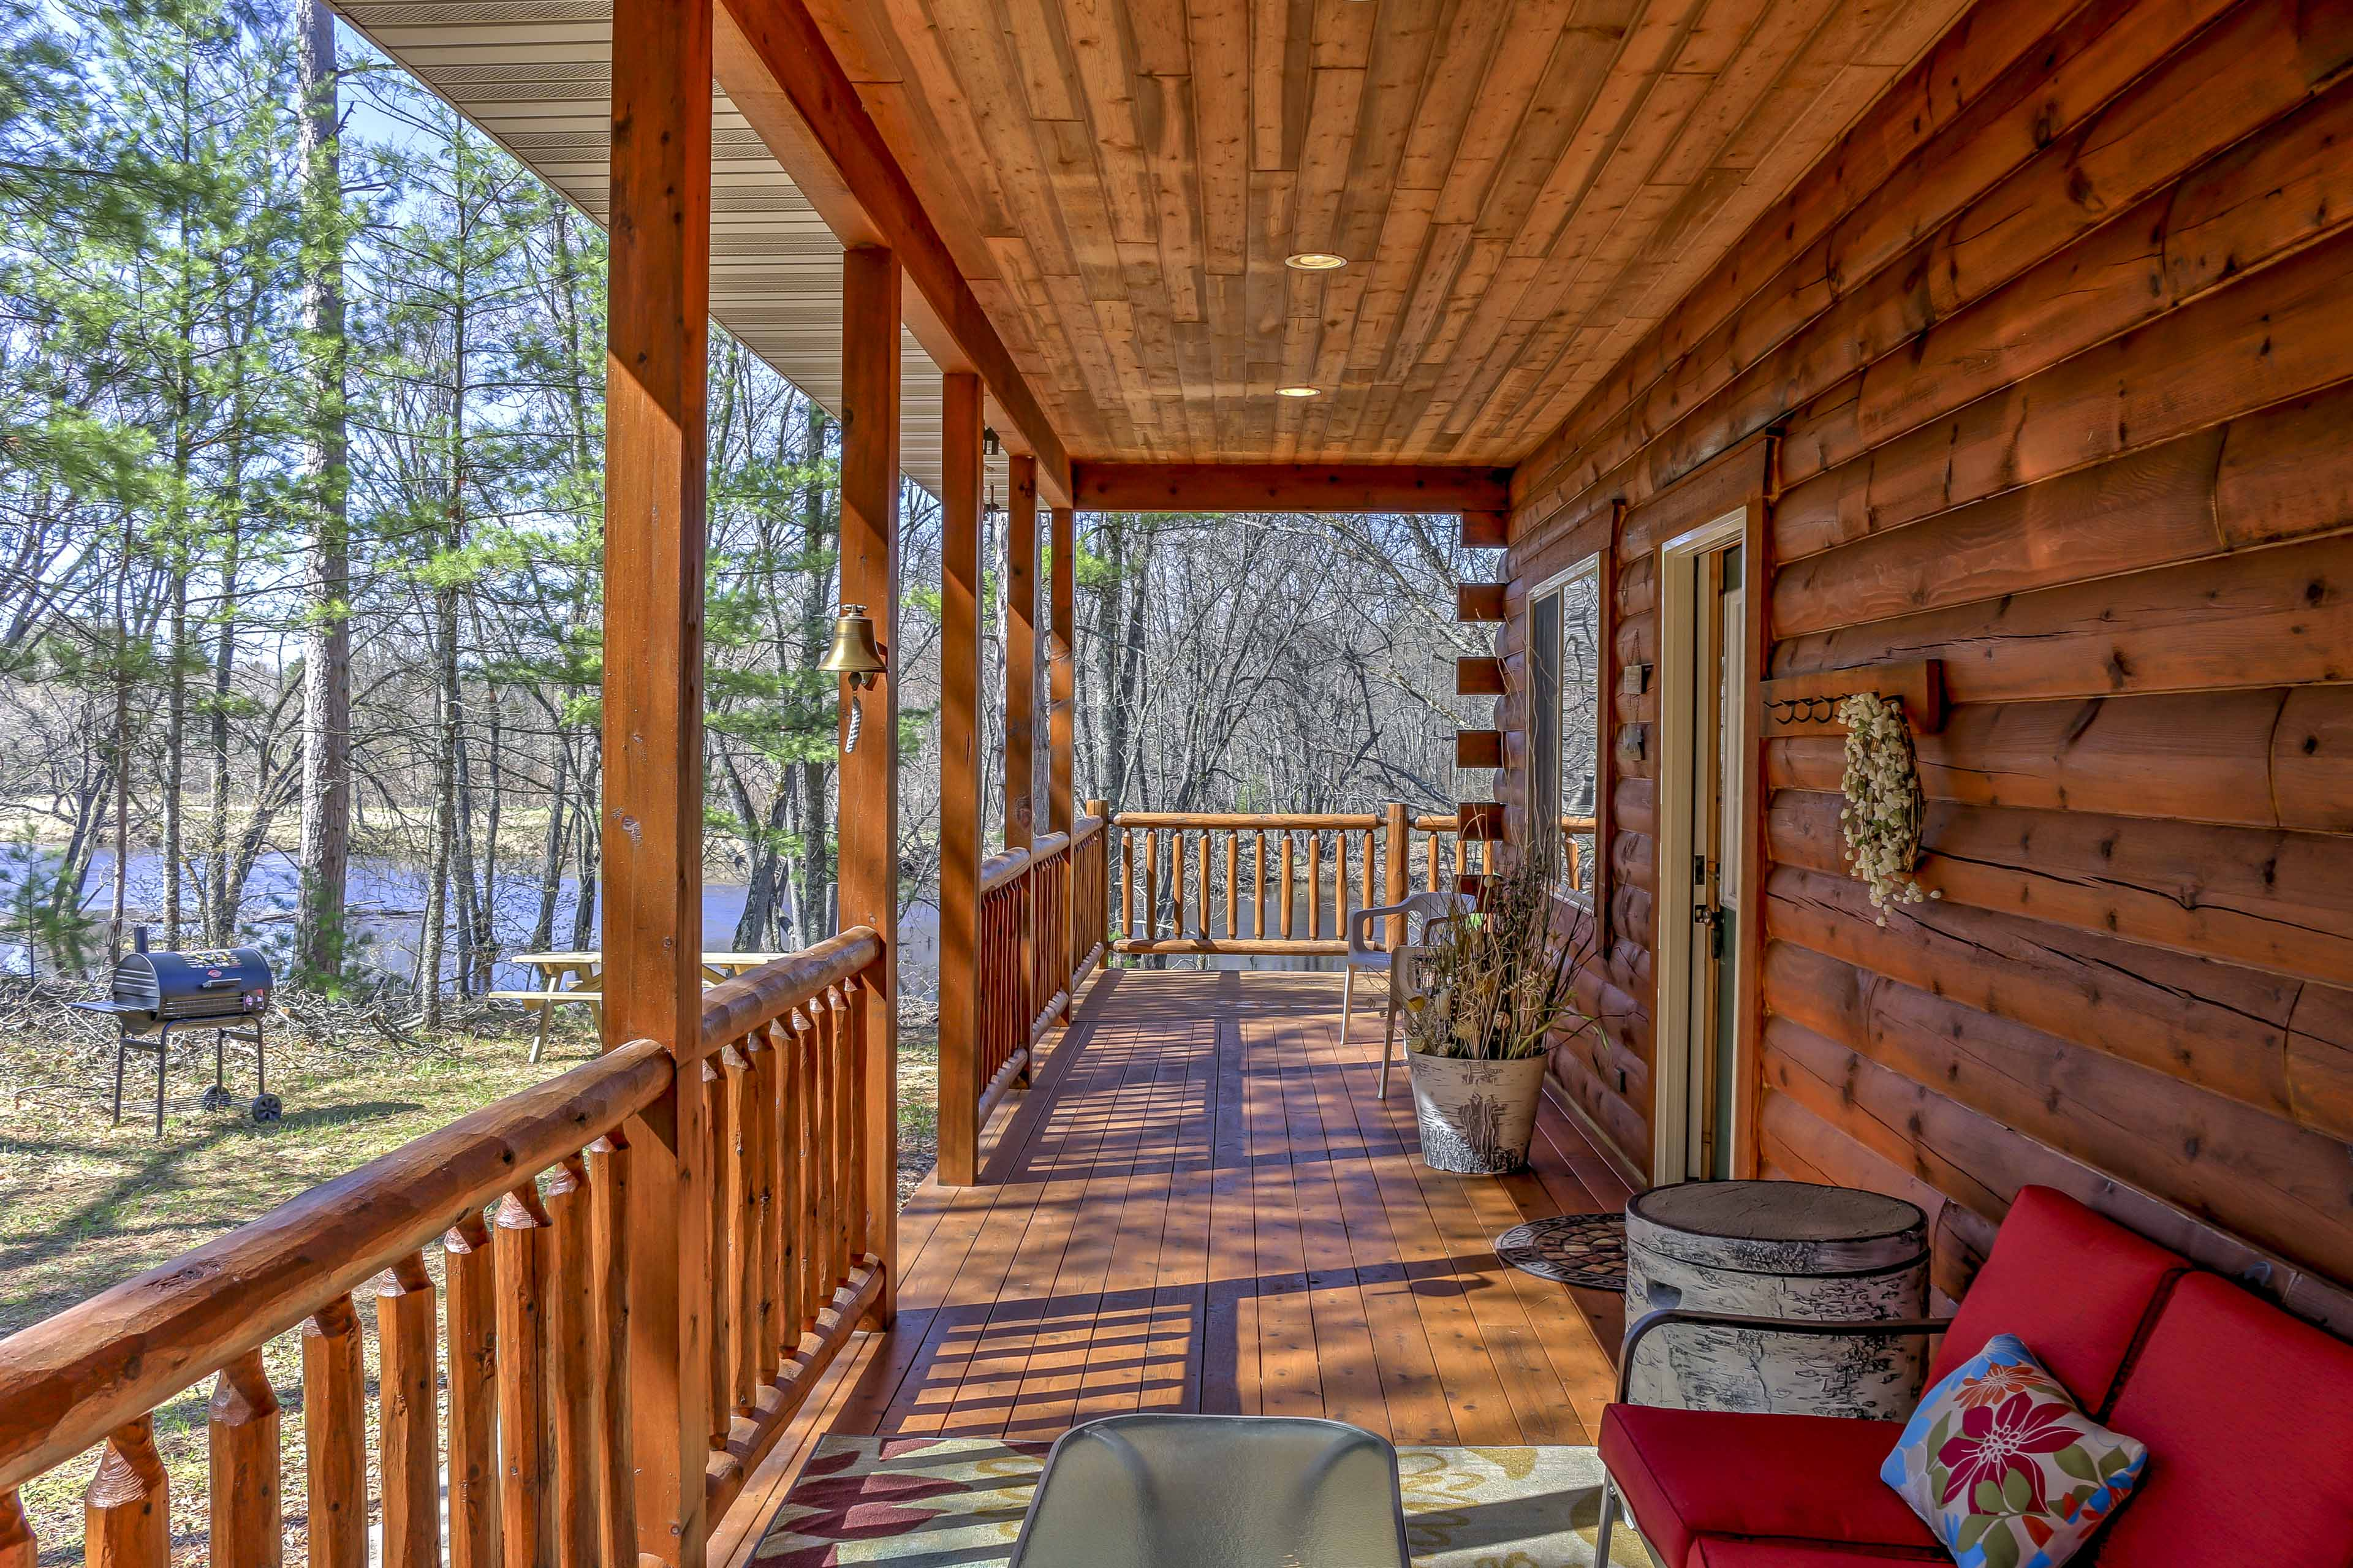 Get some fresh air on the large wraparound porch and sip a refreshing beverage.